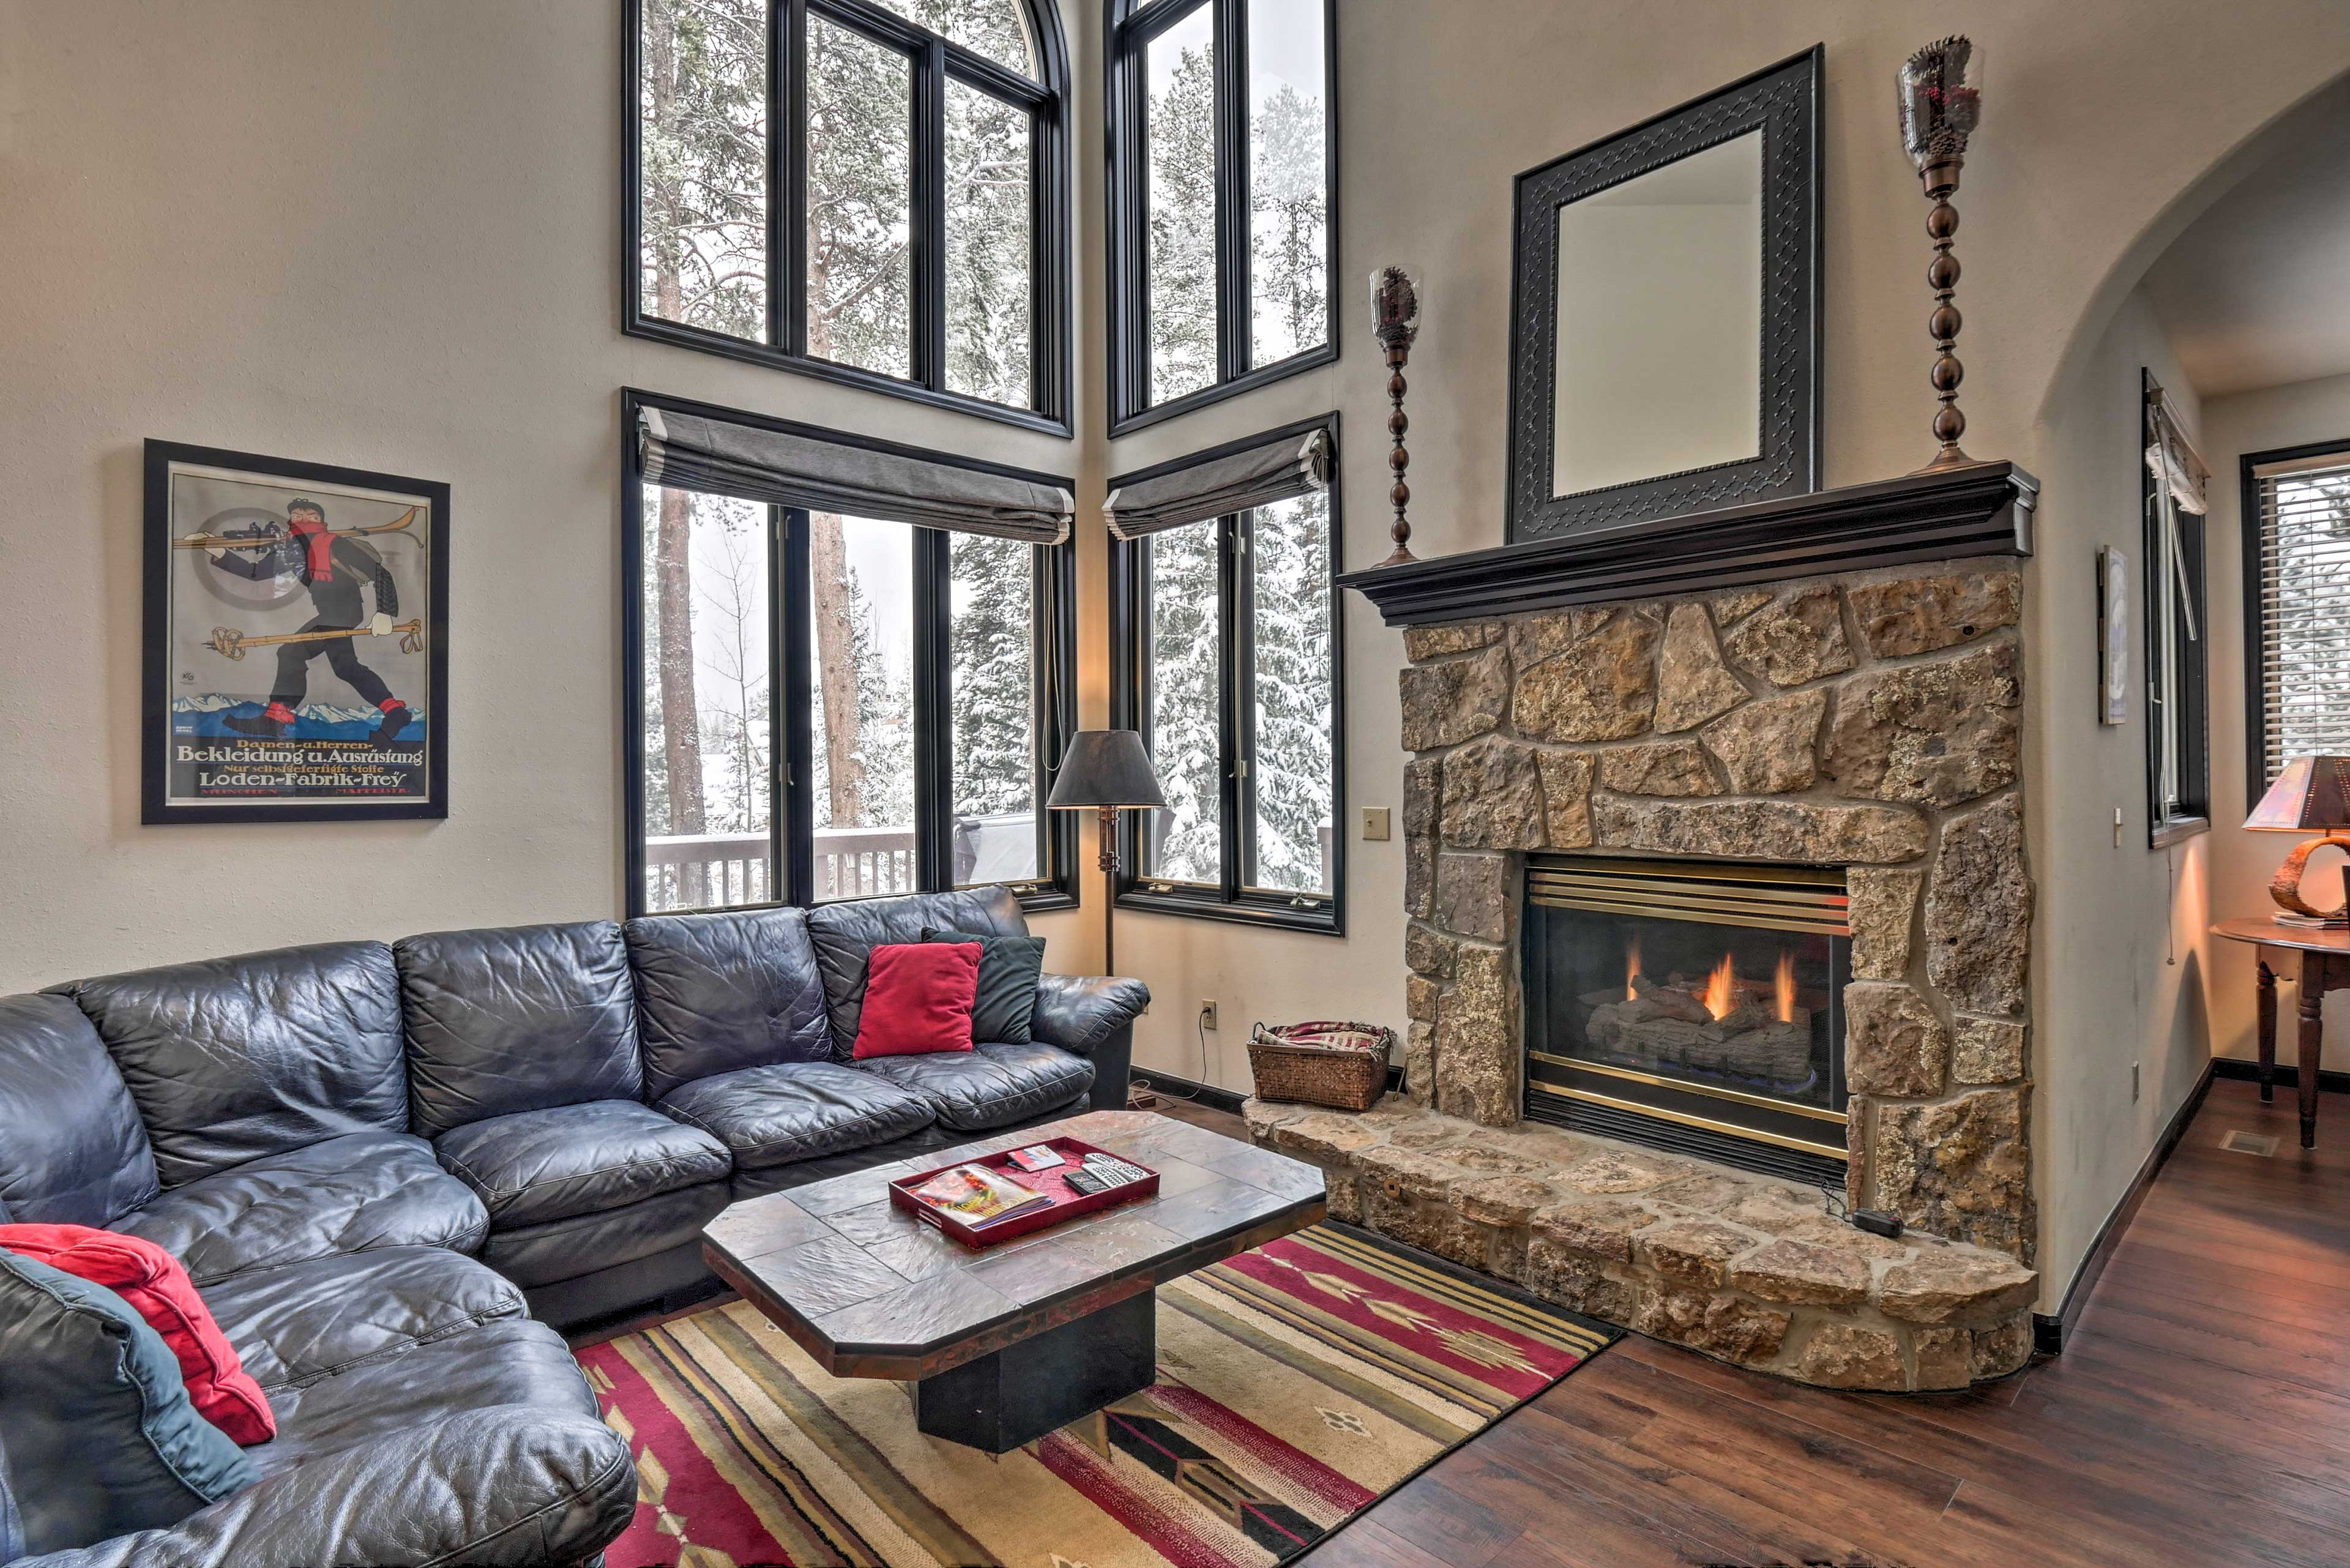 Breckenridge Vacation Rental Home   4BR   3BA   3,200 Sq Ft   Stairs Required